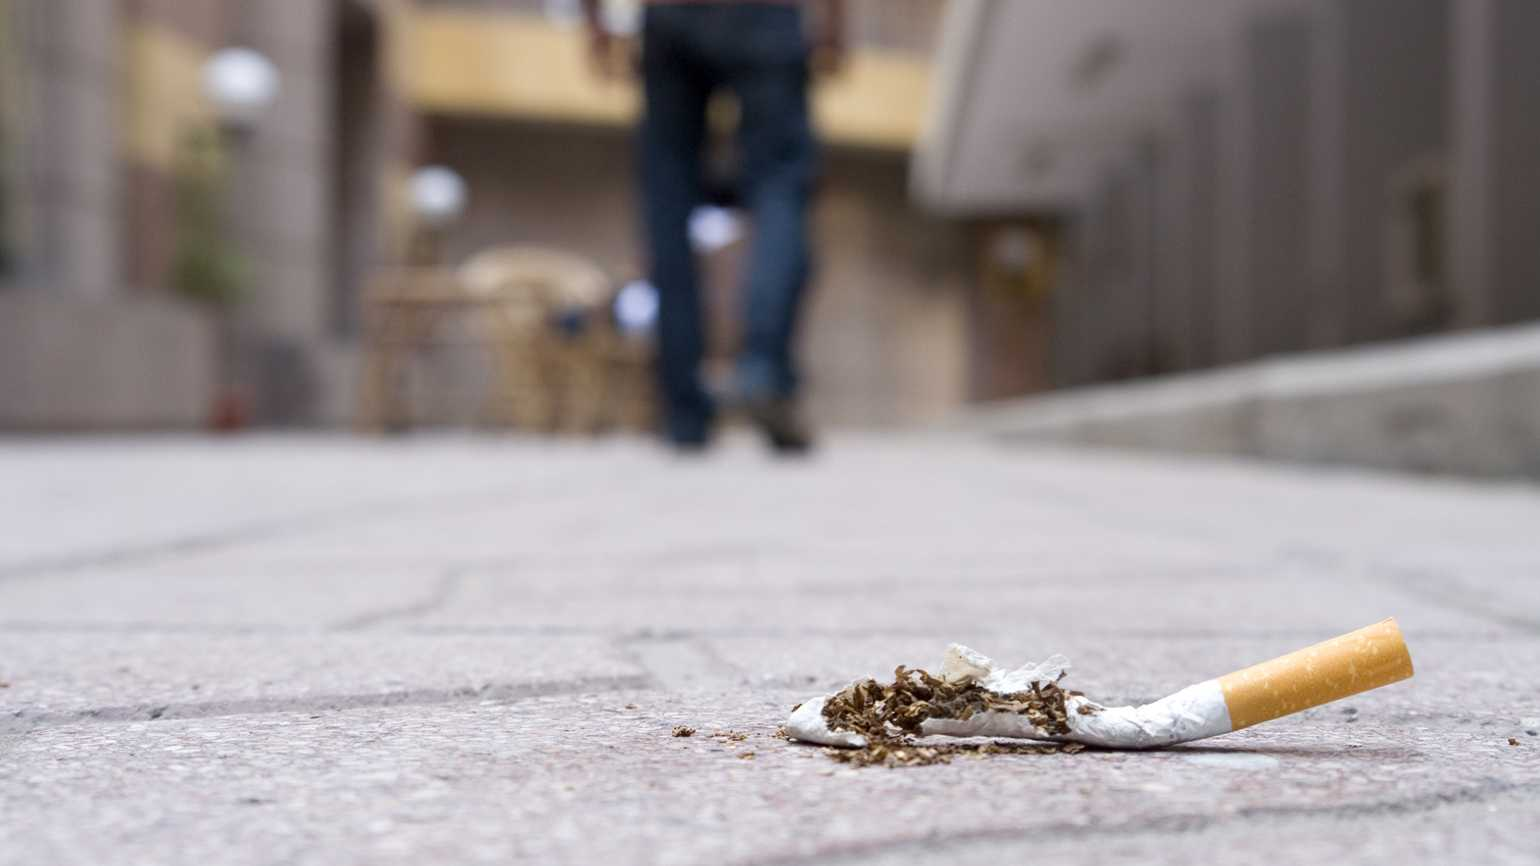 A man walking away from cigarettes.